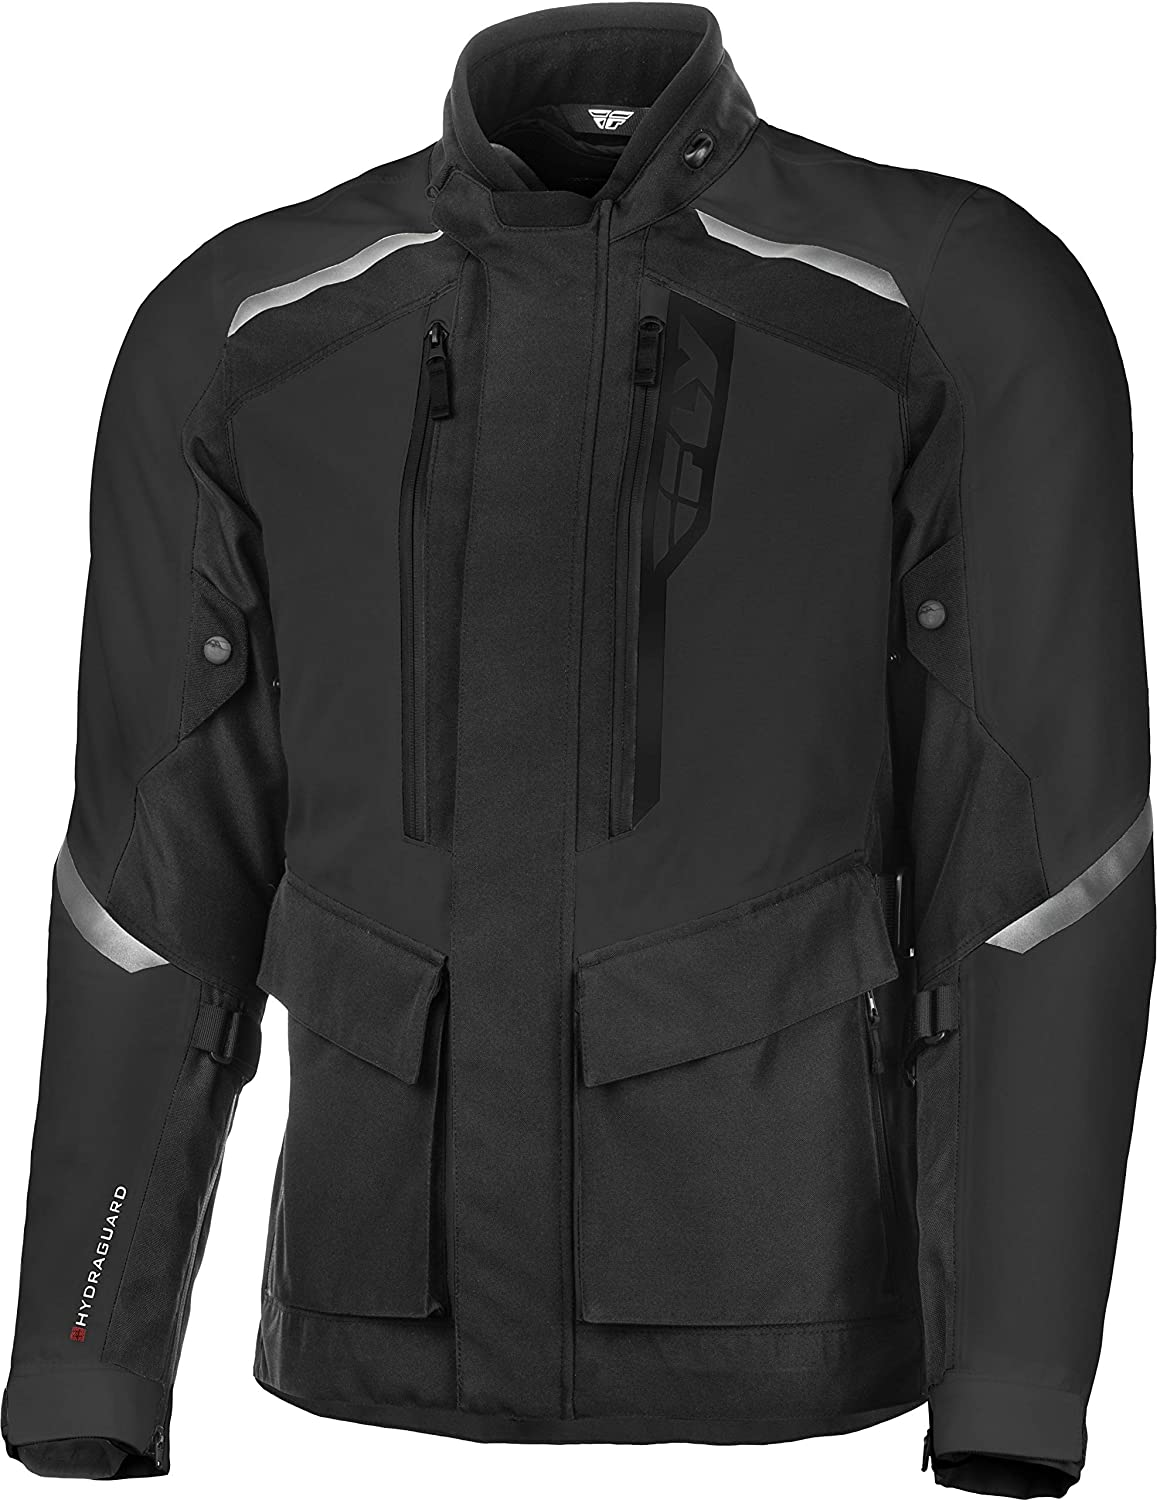 FLY Racing Terra Trek Adventure Motorcycle Jacket, Protective Motorcycle Gear with Body Armor (BLACK, 2X TALL)